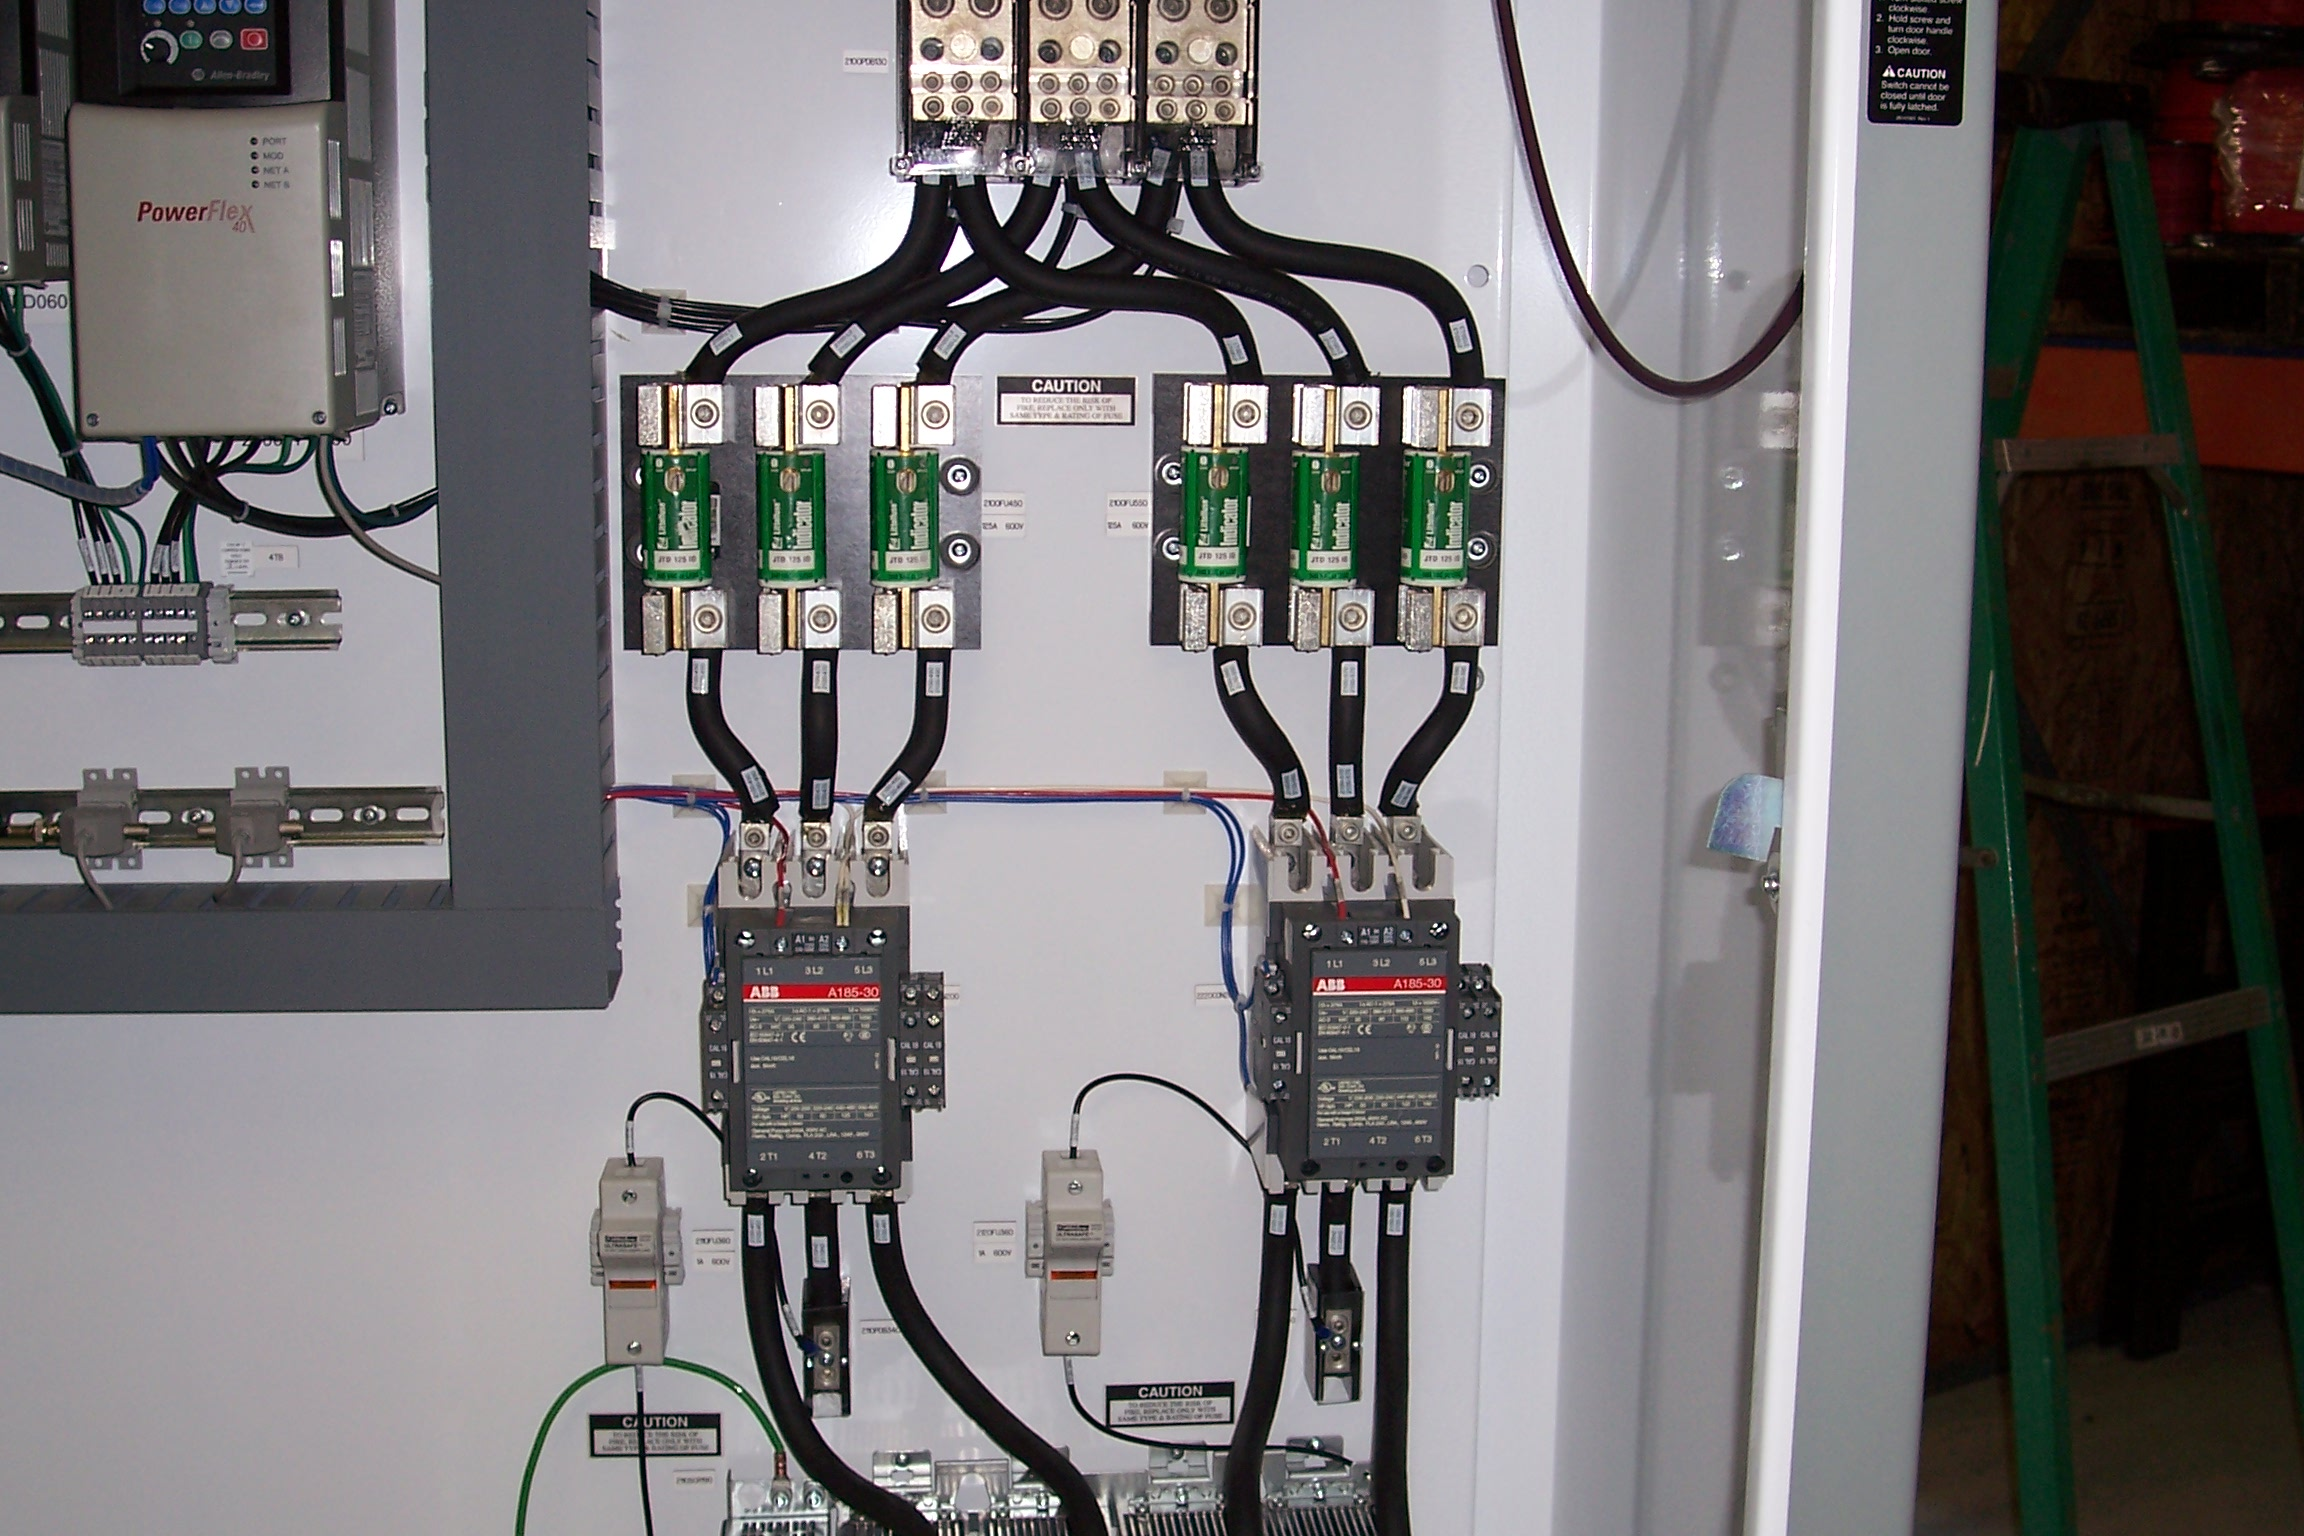 Wiring Industrial Controls Electrical Diagram How To Construct Diagrams Control Panel Trusted Hvac